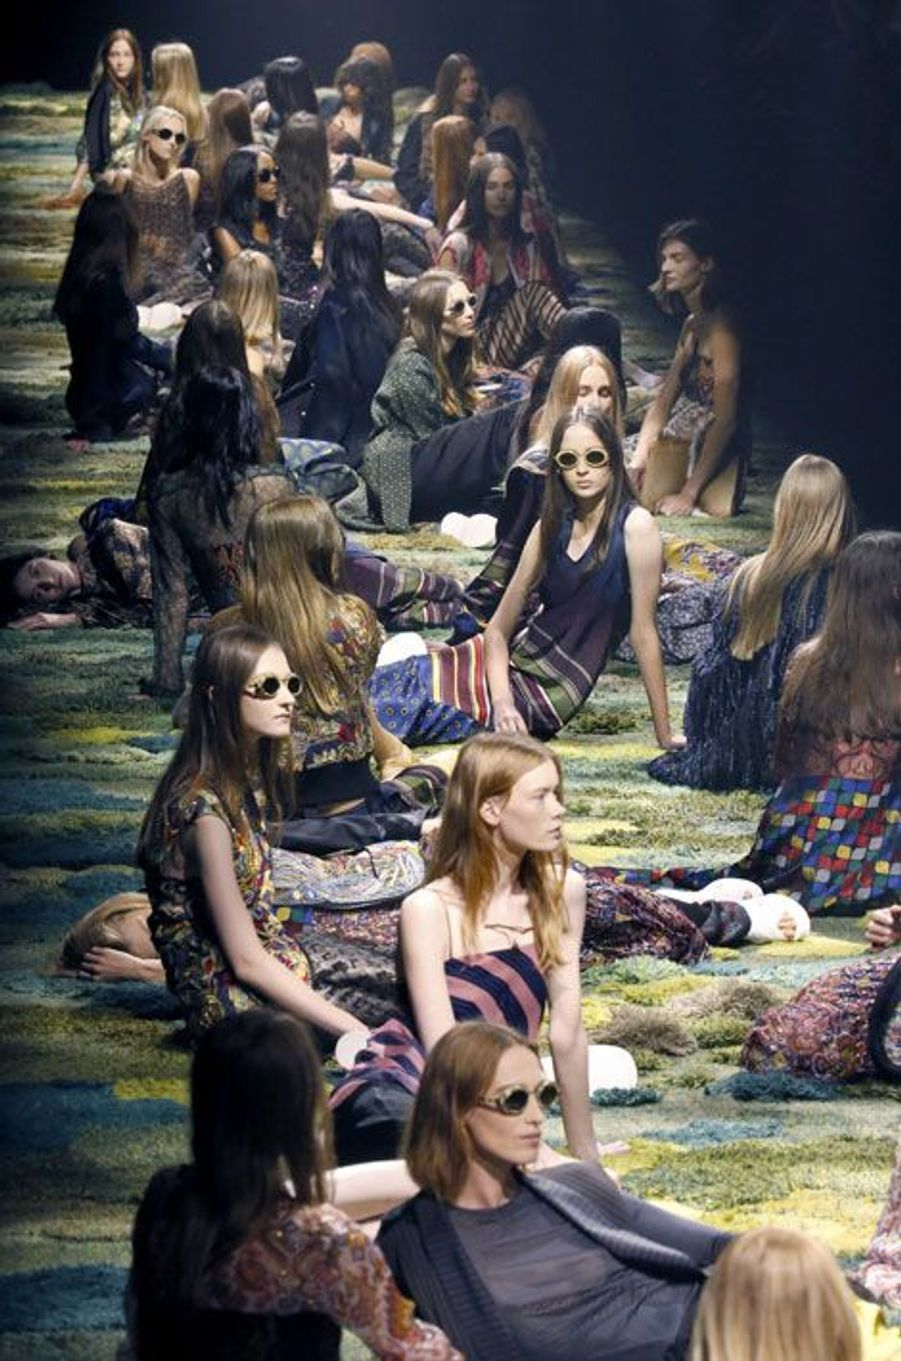 Dries Van Noten. L'appel de la nature